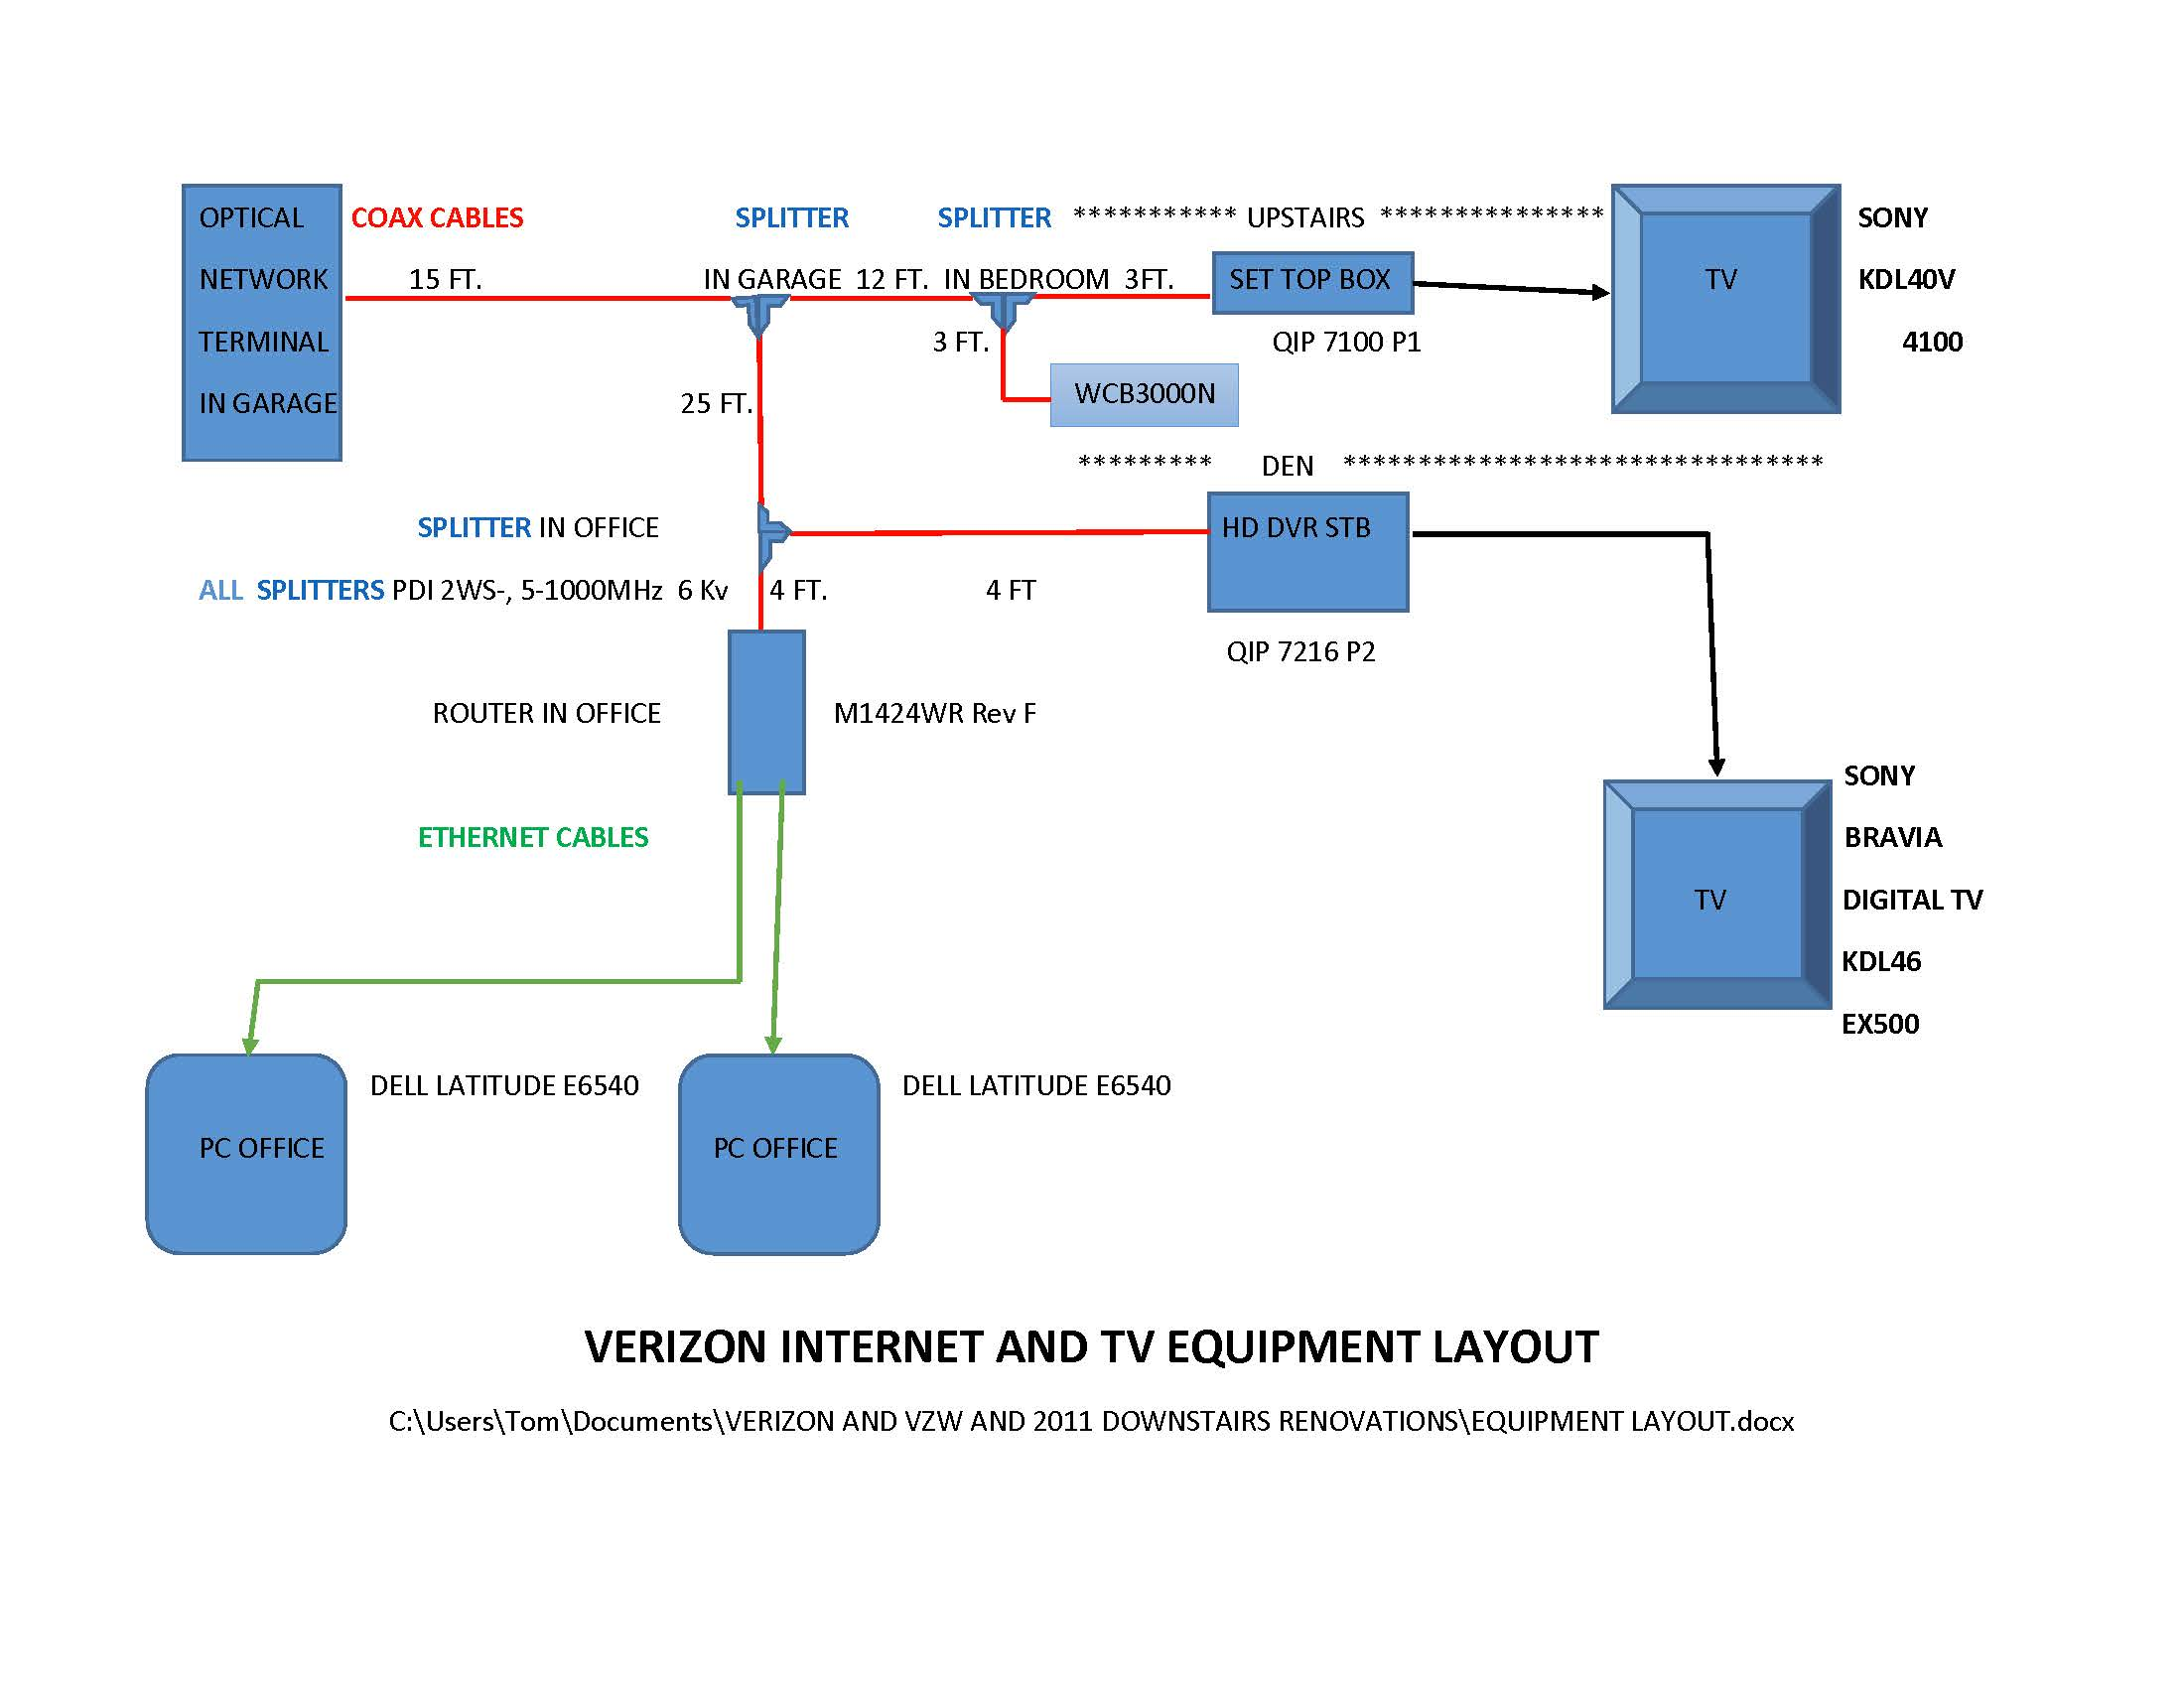 verizon dsl phone line wiring diagram dsl wiring basics wiring diagram odicis [ 2200 x 1700 Pixel ]